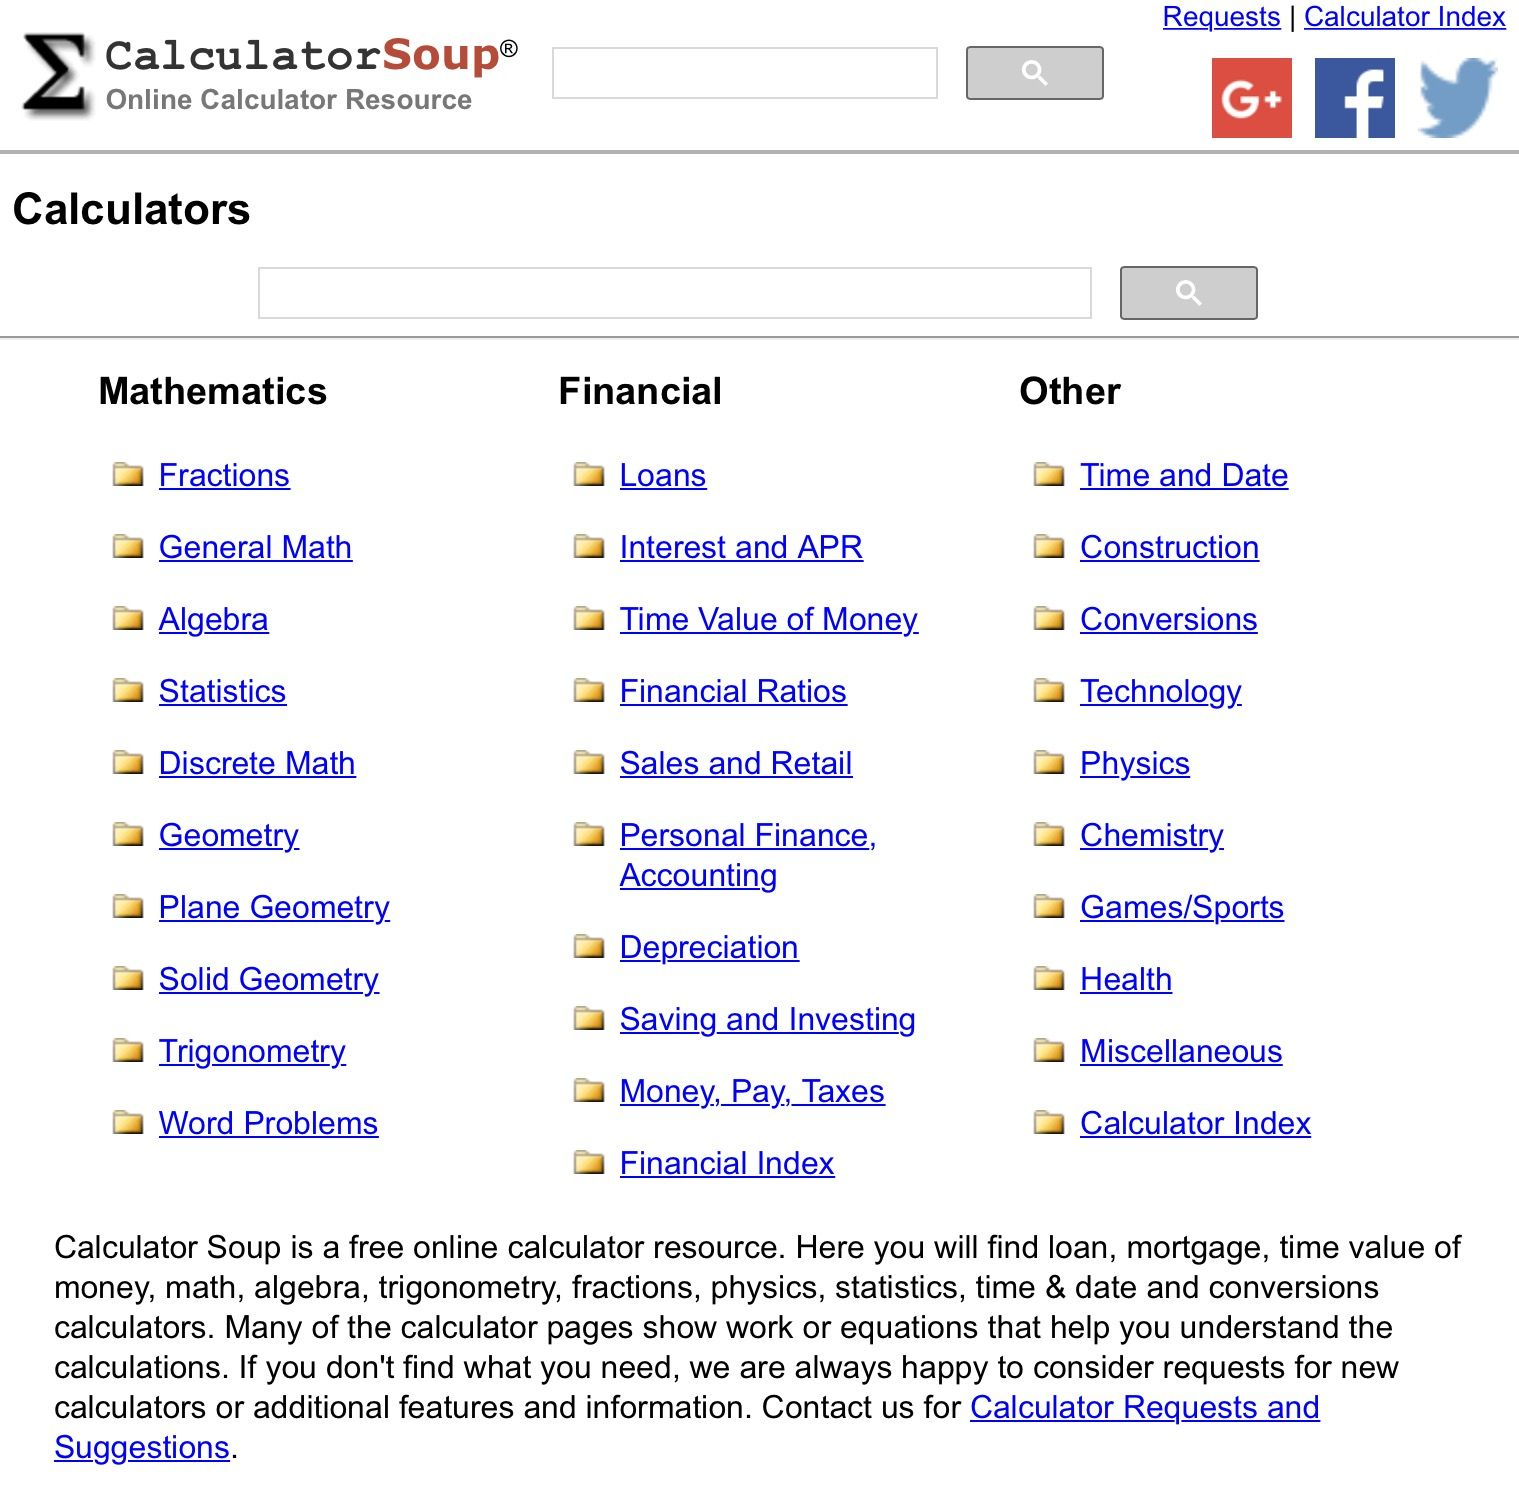 Calculator Soup Free On Line Calculators For Any Problem Online Calculator Earth And Space Science Space Science